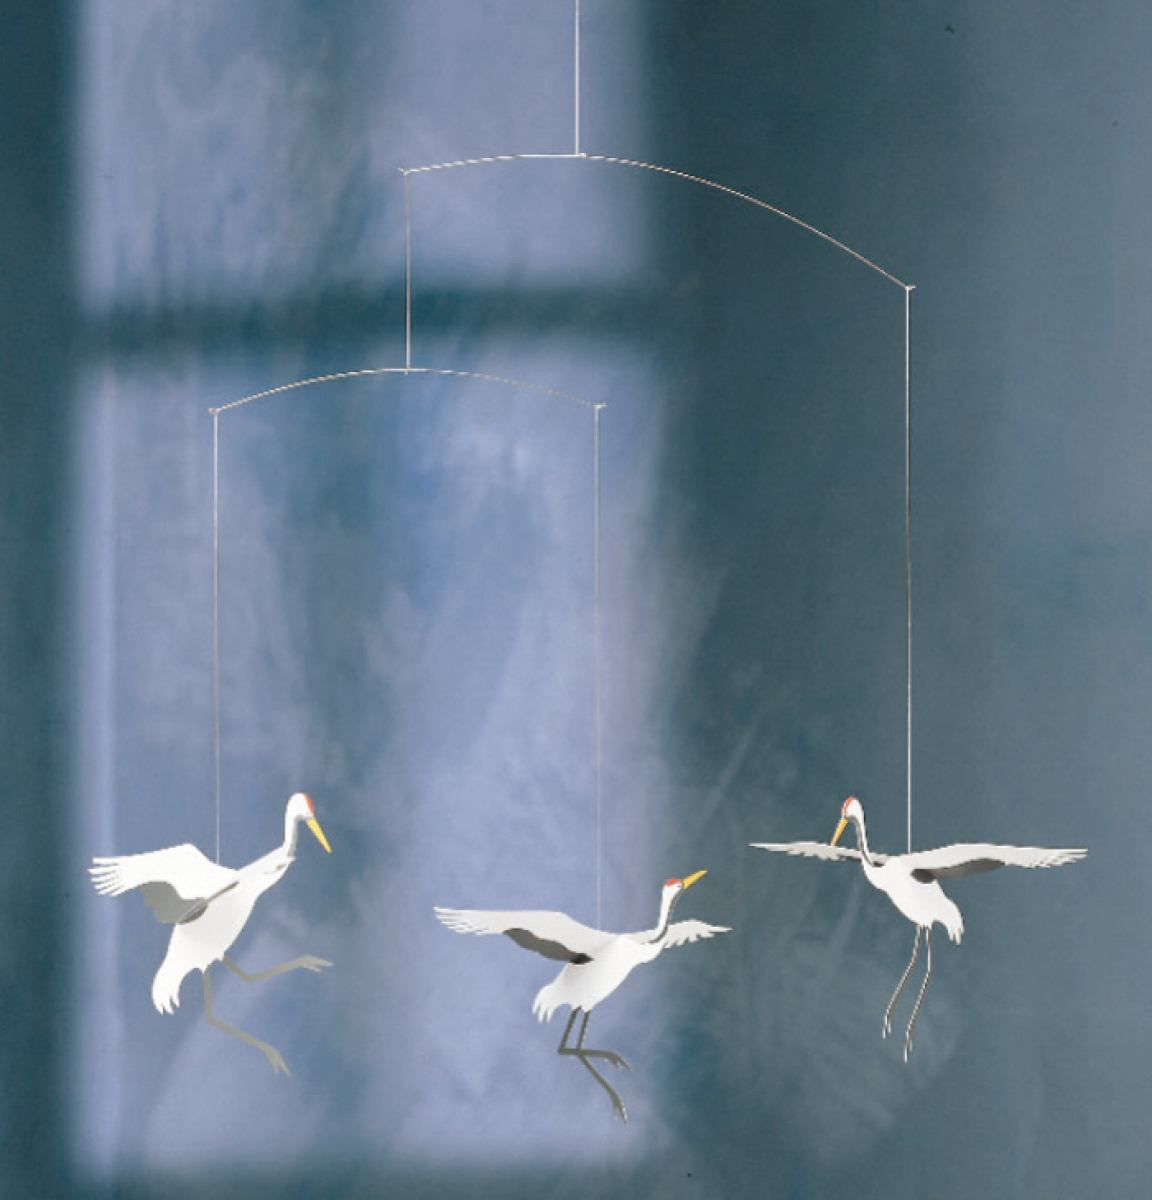 Crane dance - mobile for babies and children by Flensted | Kunstbaron